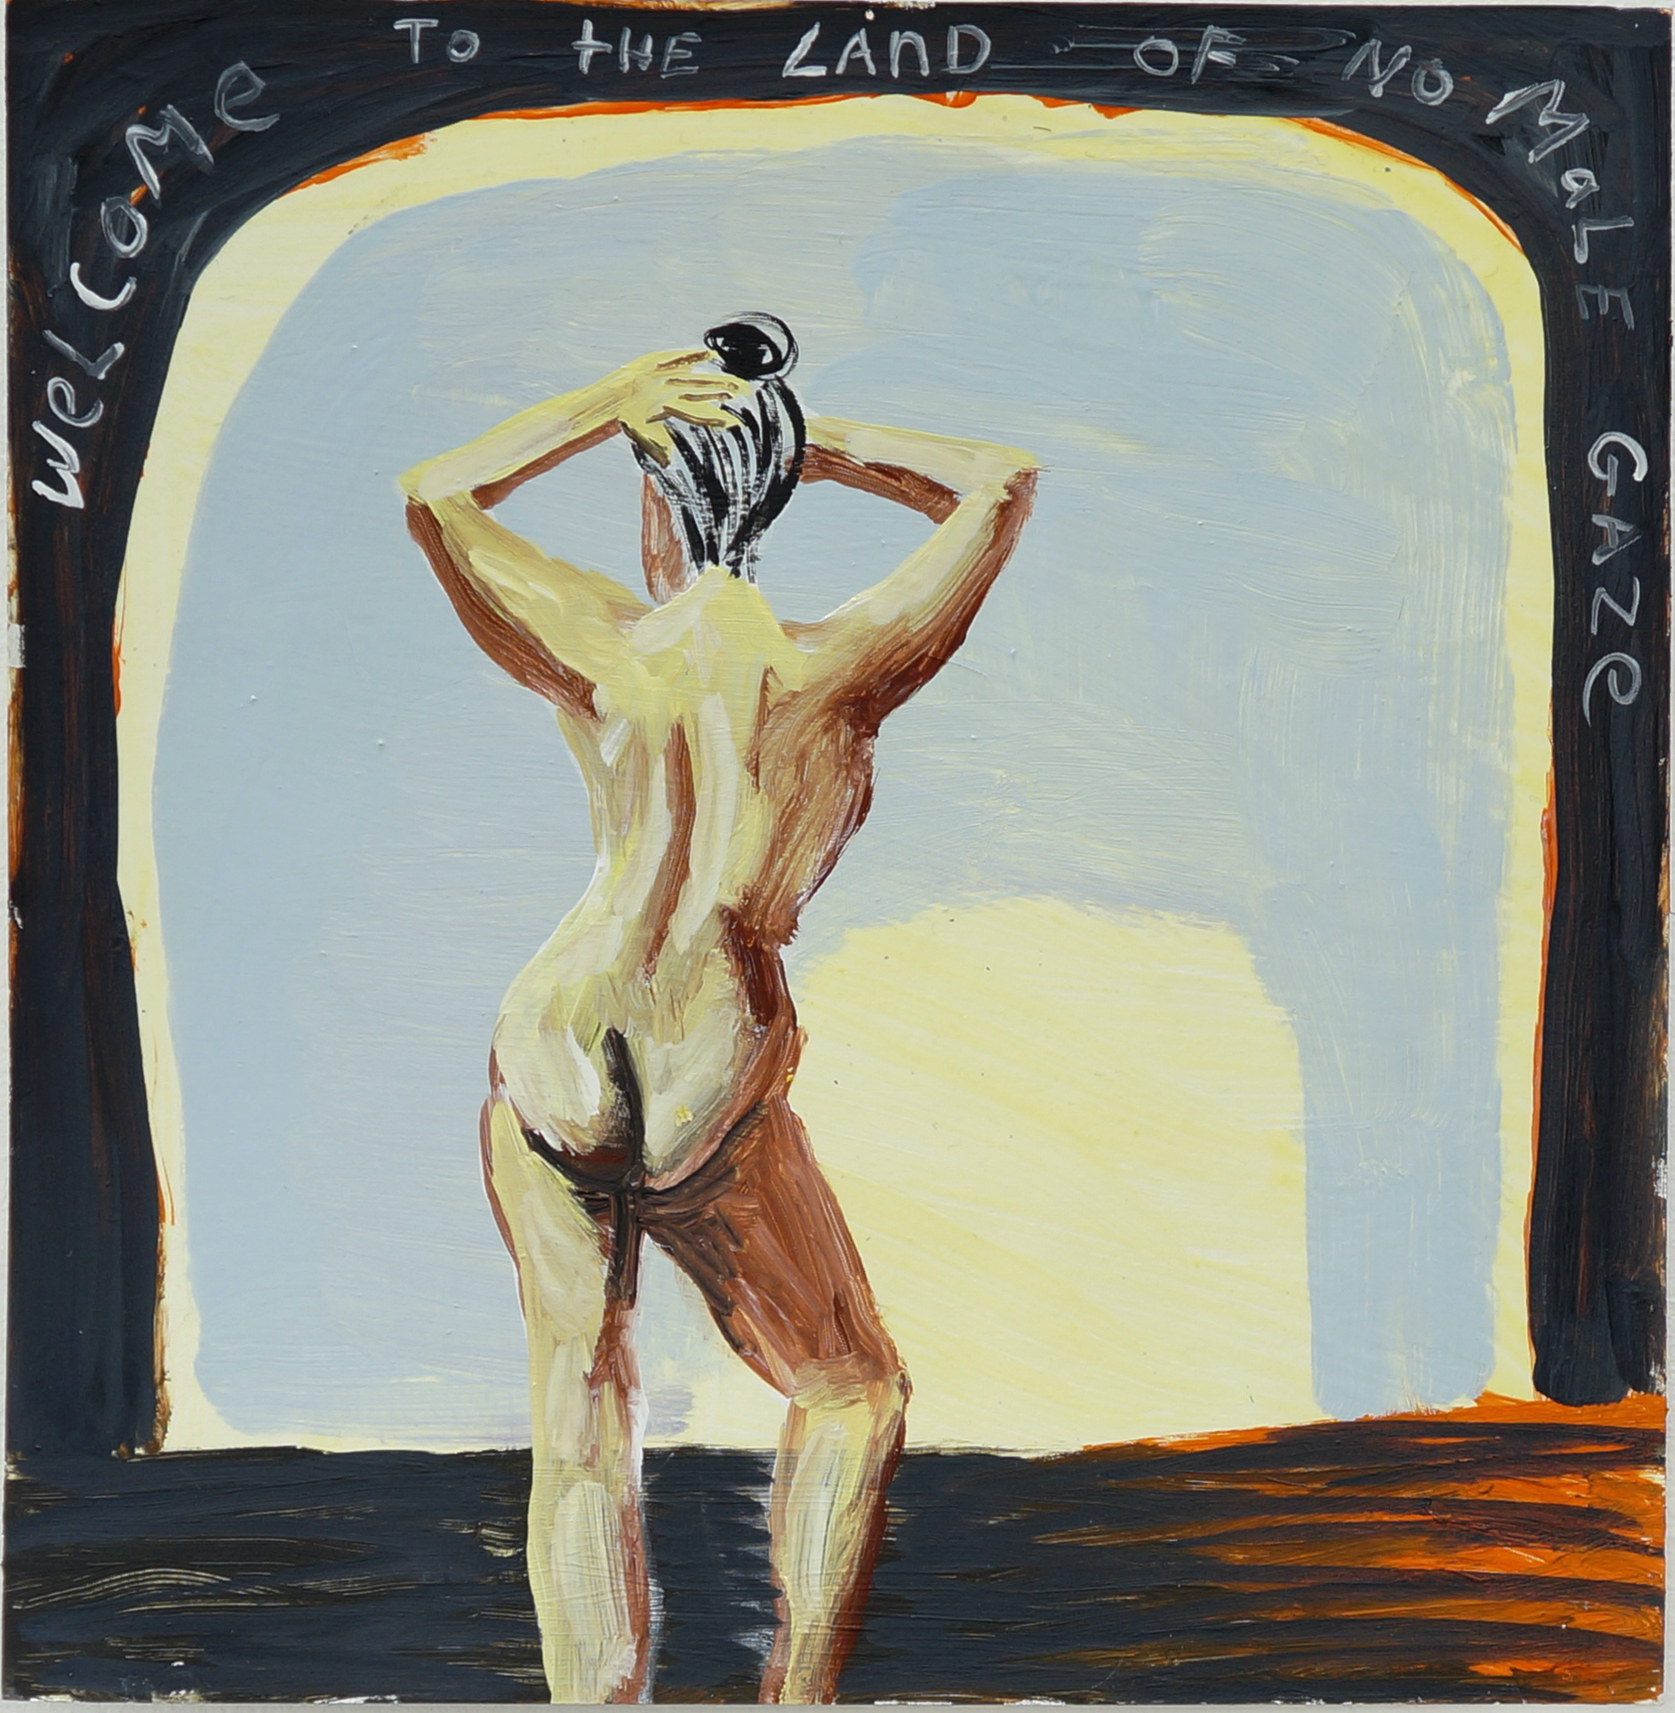 Cate White, The Land of No Male Gaze, 12 x 12, acrylic, latex, on paper, 2018